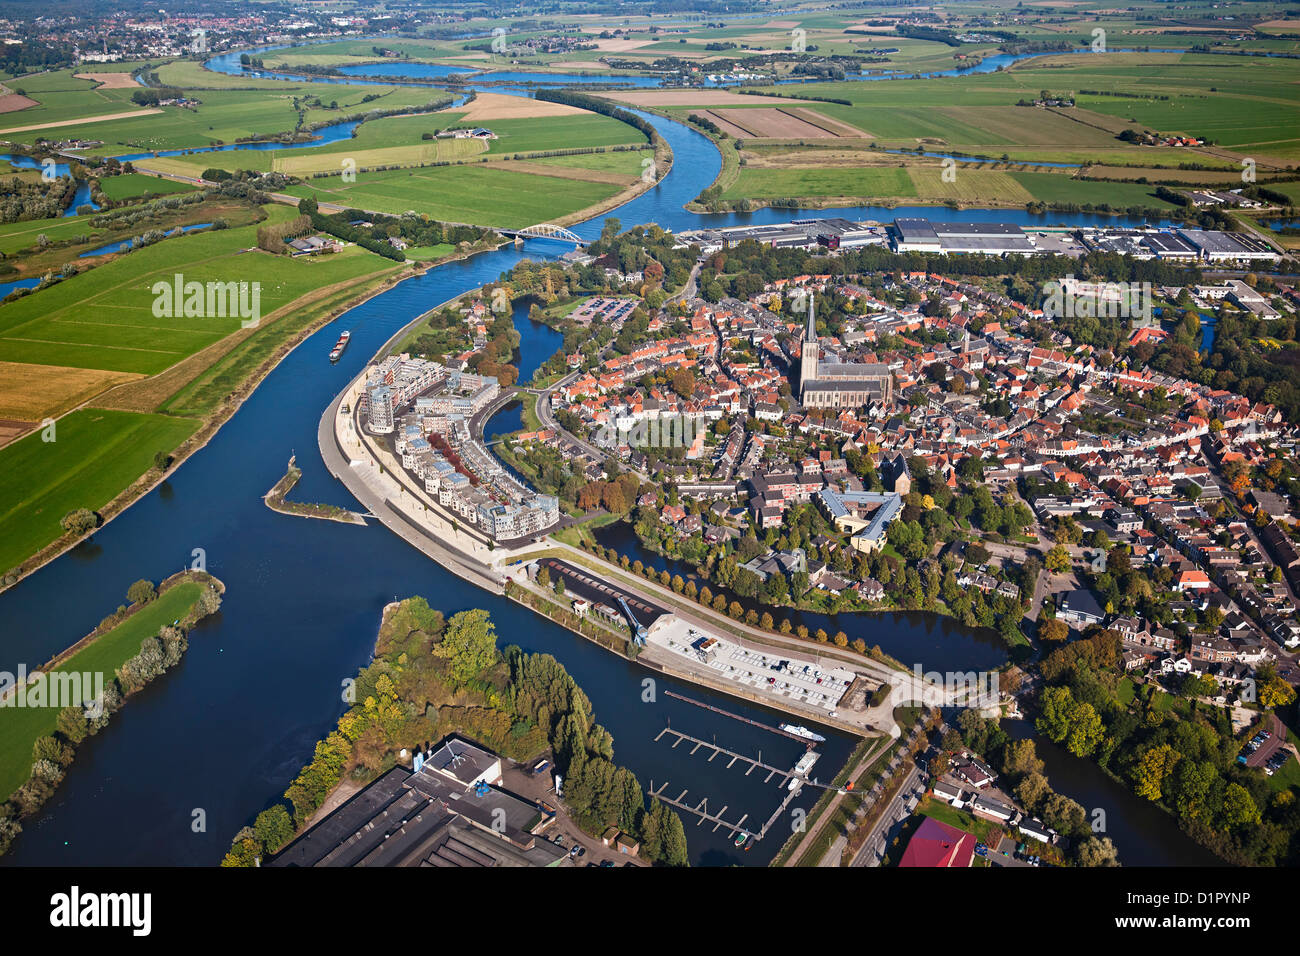 The Netherlands, Doesburg, Fortified city at IJssel river. Aerial. - Stock Image